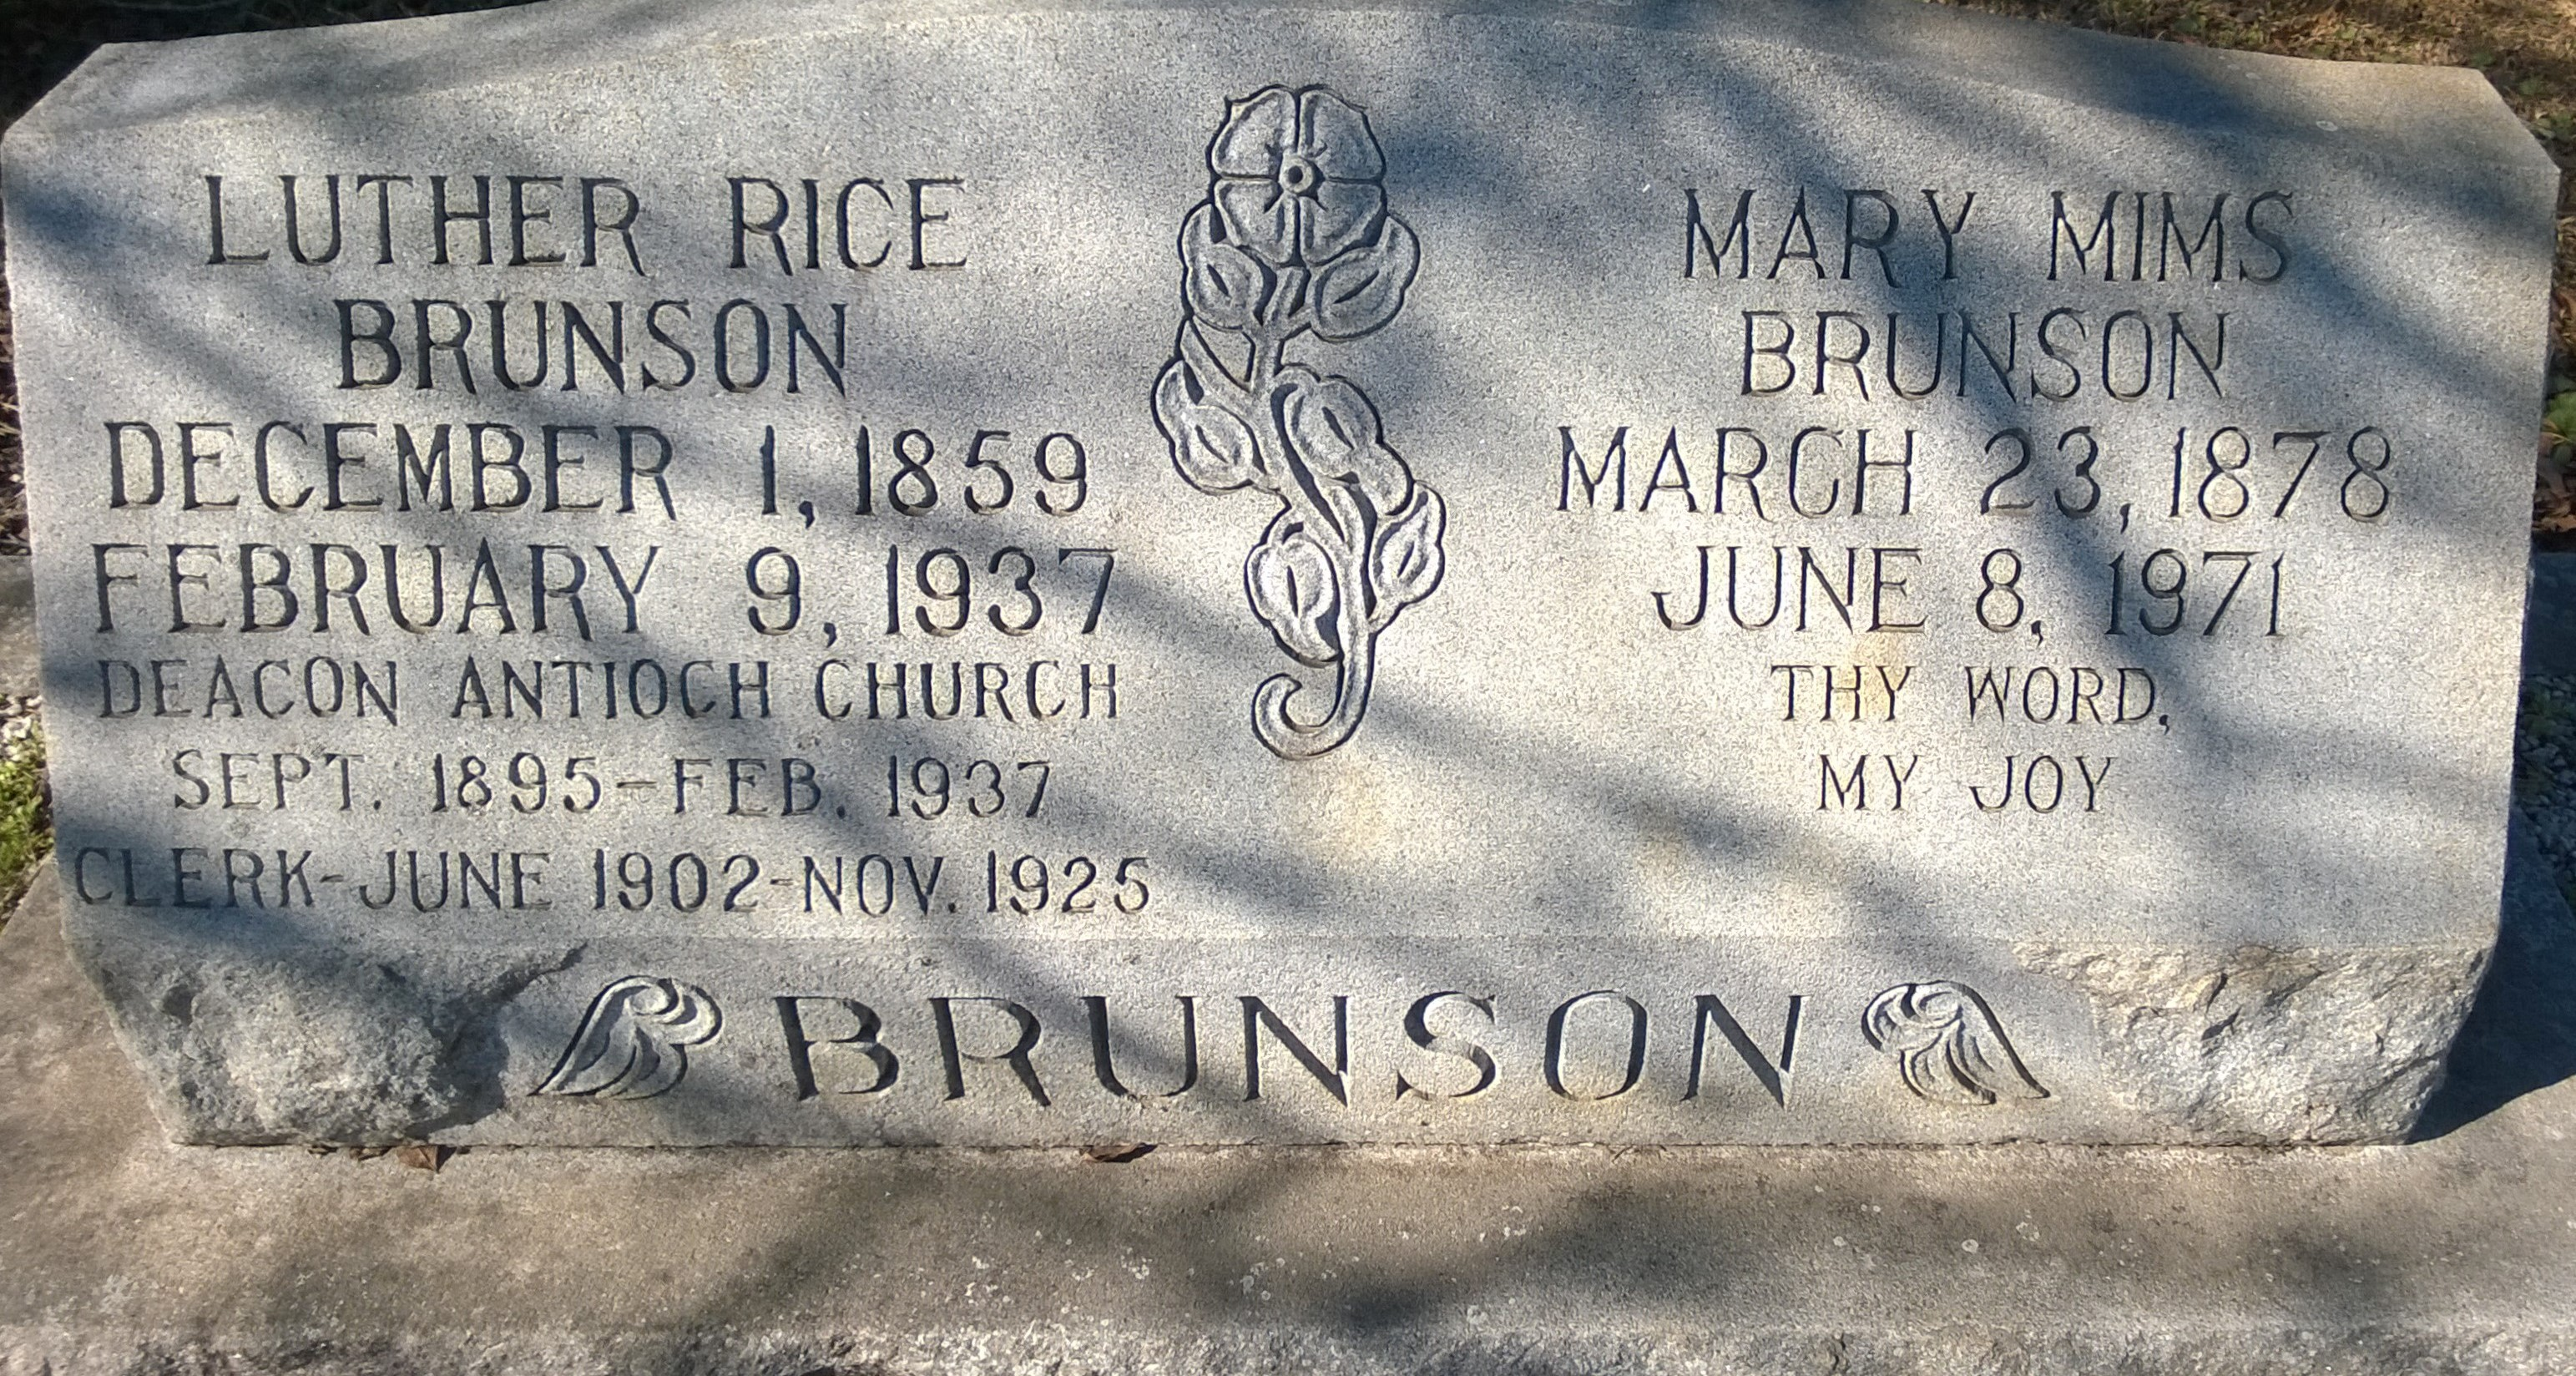 Luther Rice Brunson